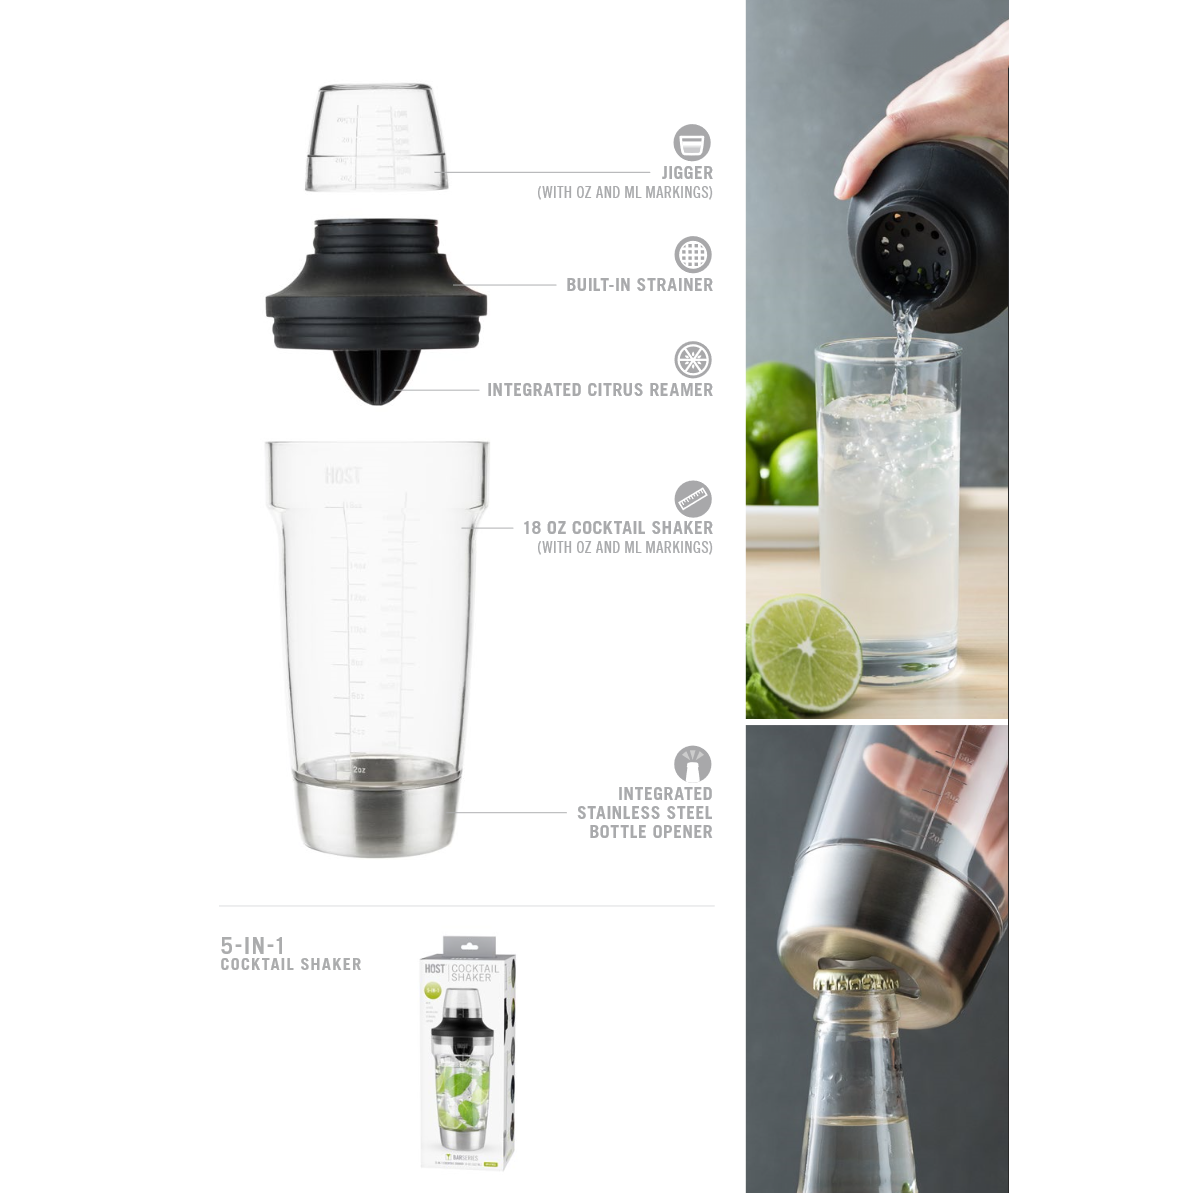 5-in-1 Cocktail Maker-Home - Entertaining - Cocktail Shakers-HOST-Peccadilly